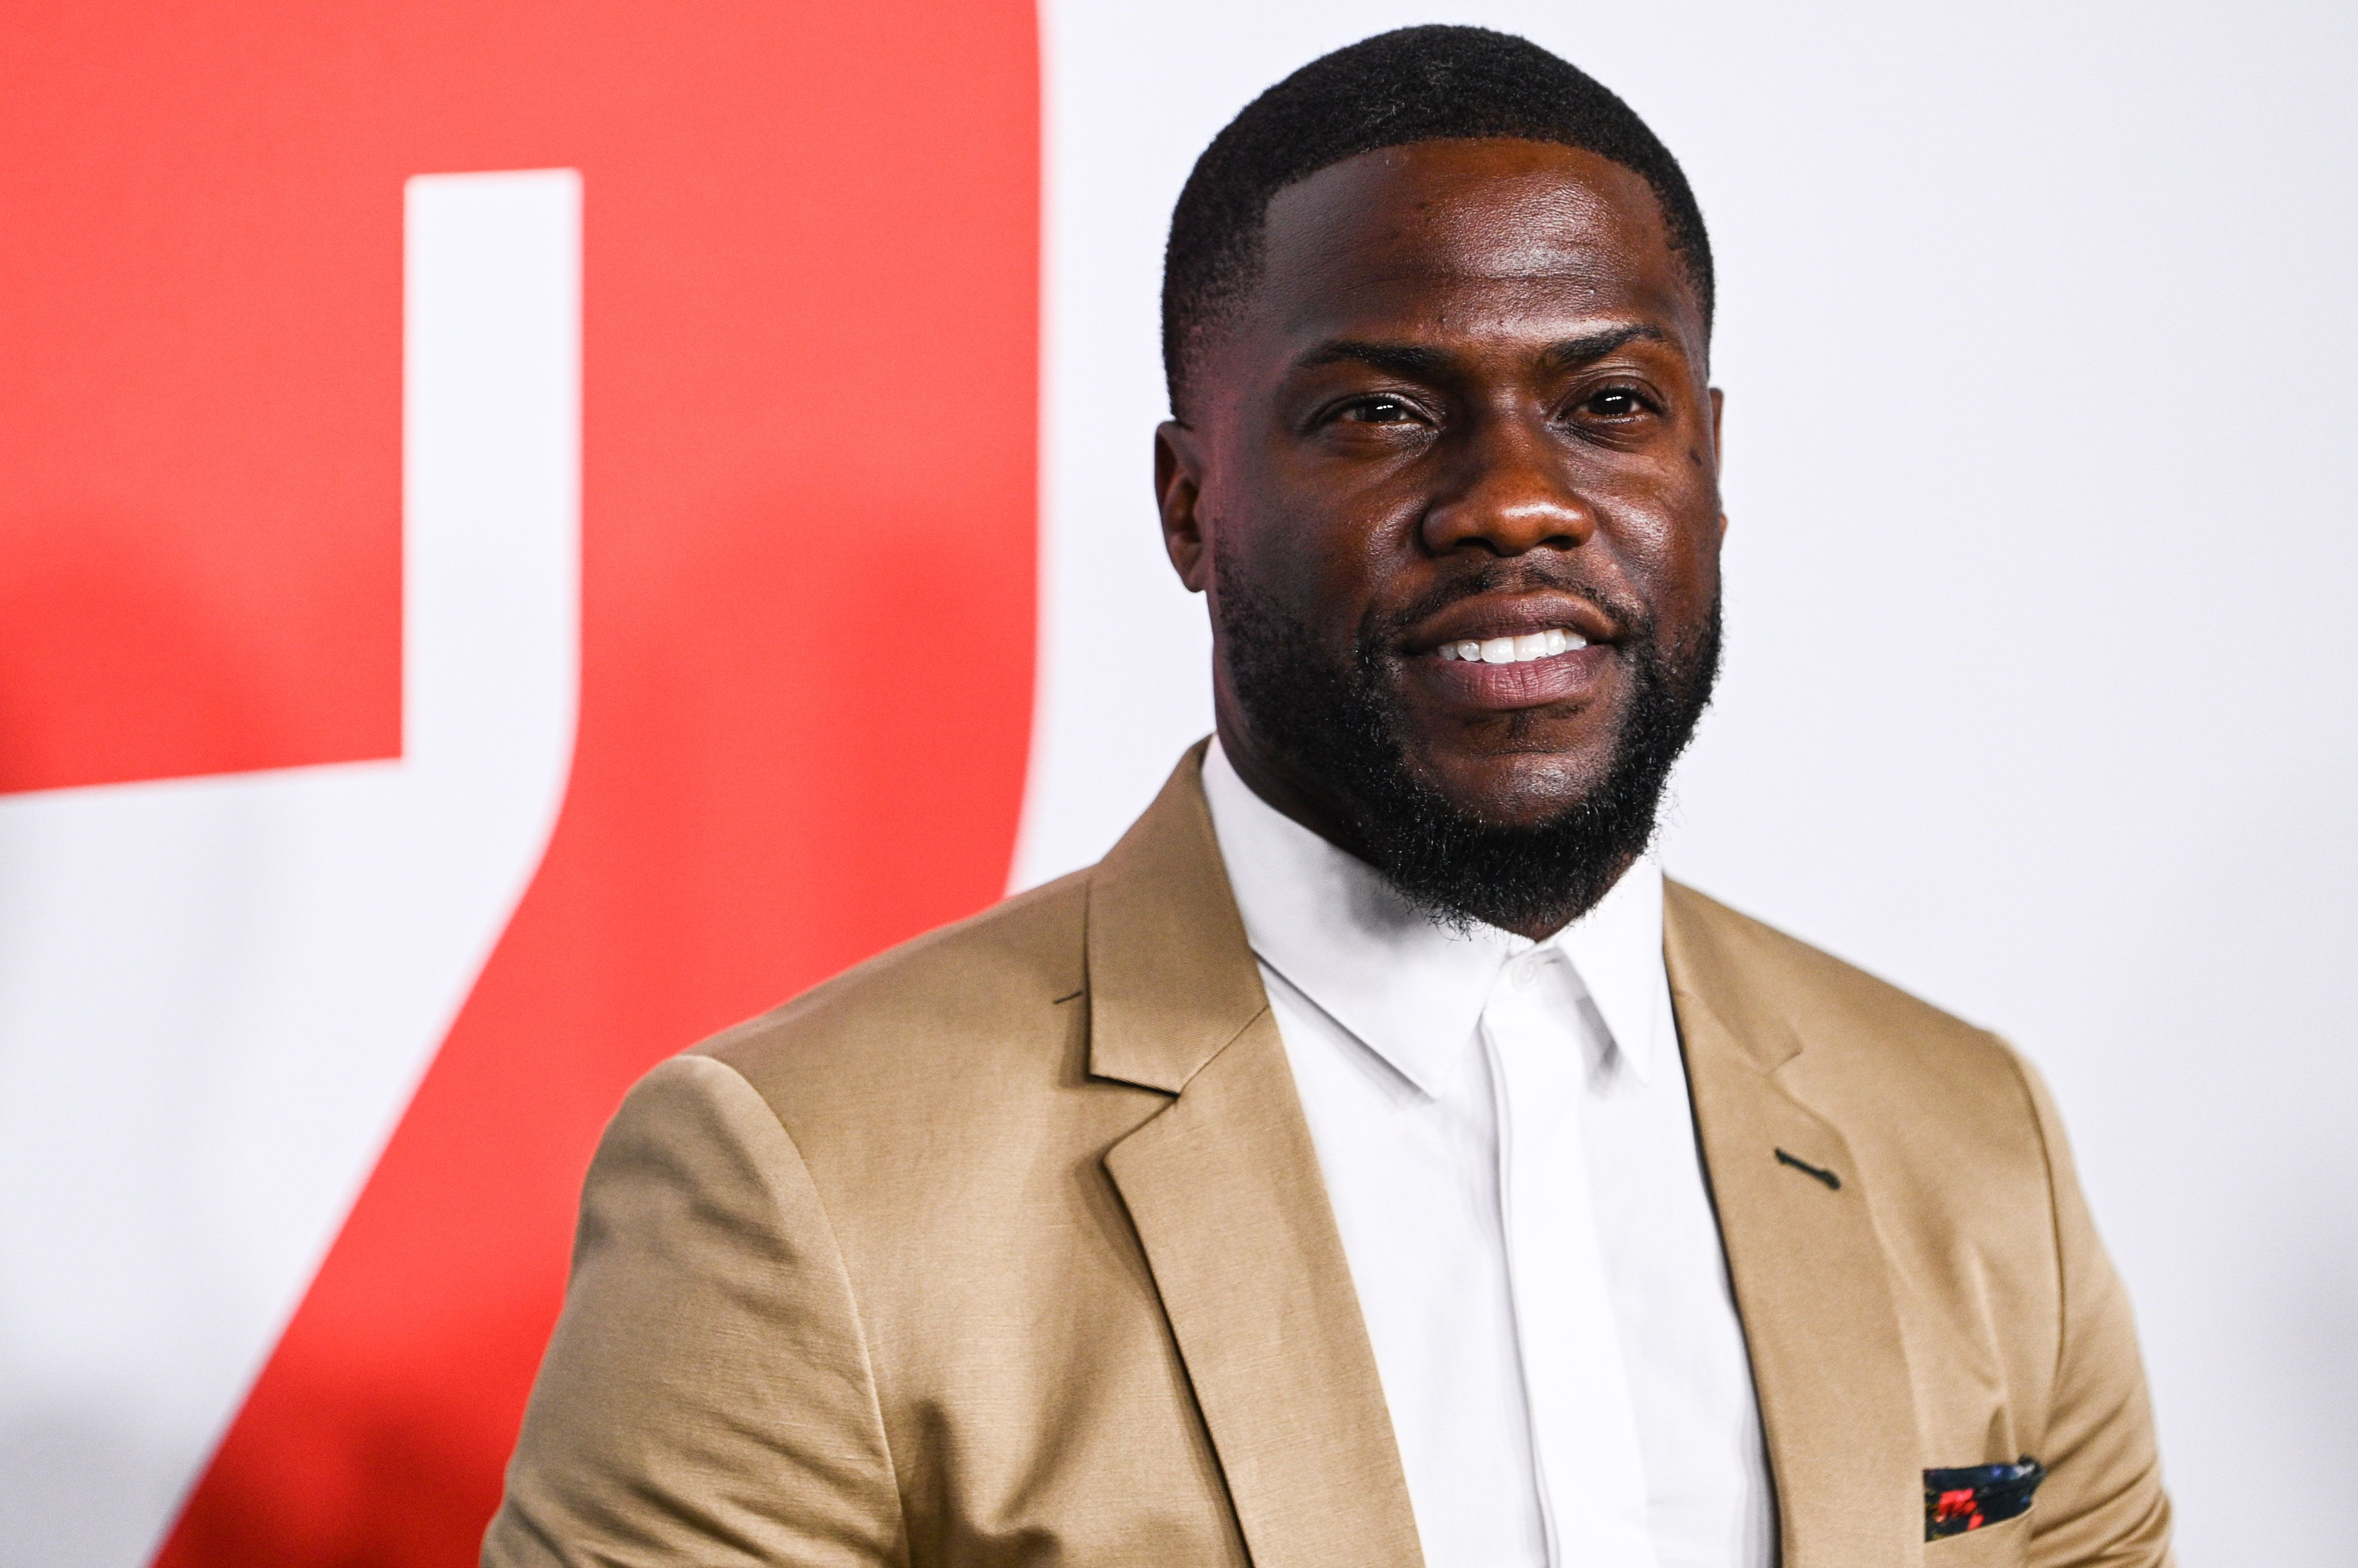 Kevin Hart looks amazing in this brown suit with a white inner T-shirt to match at an event.